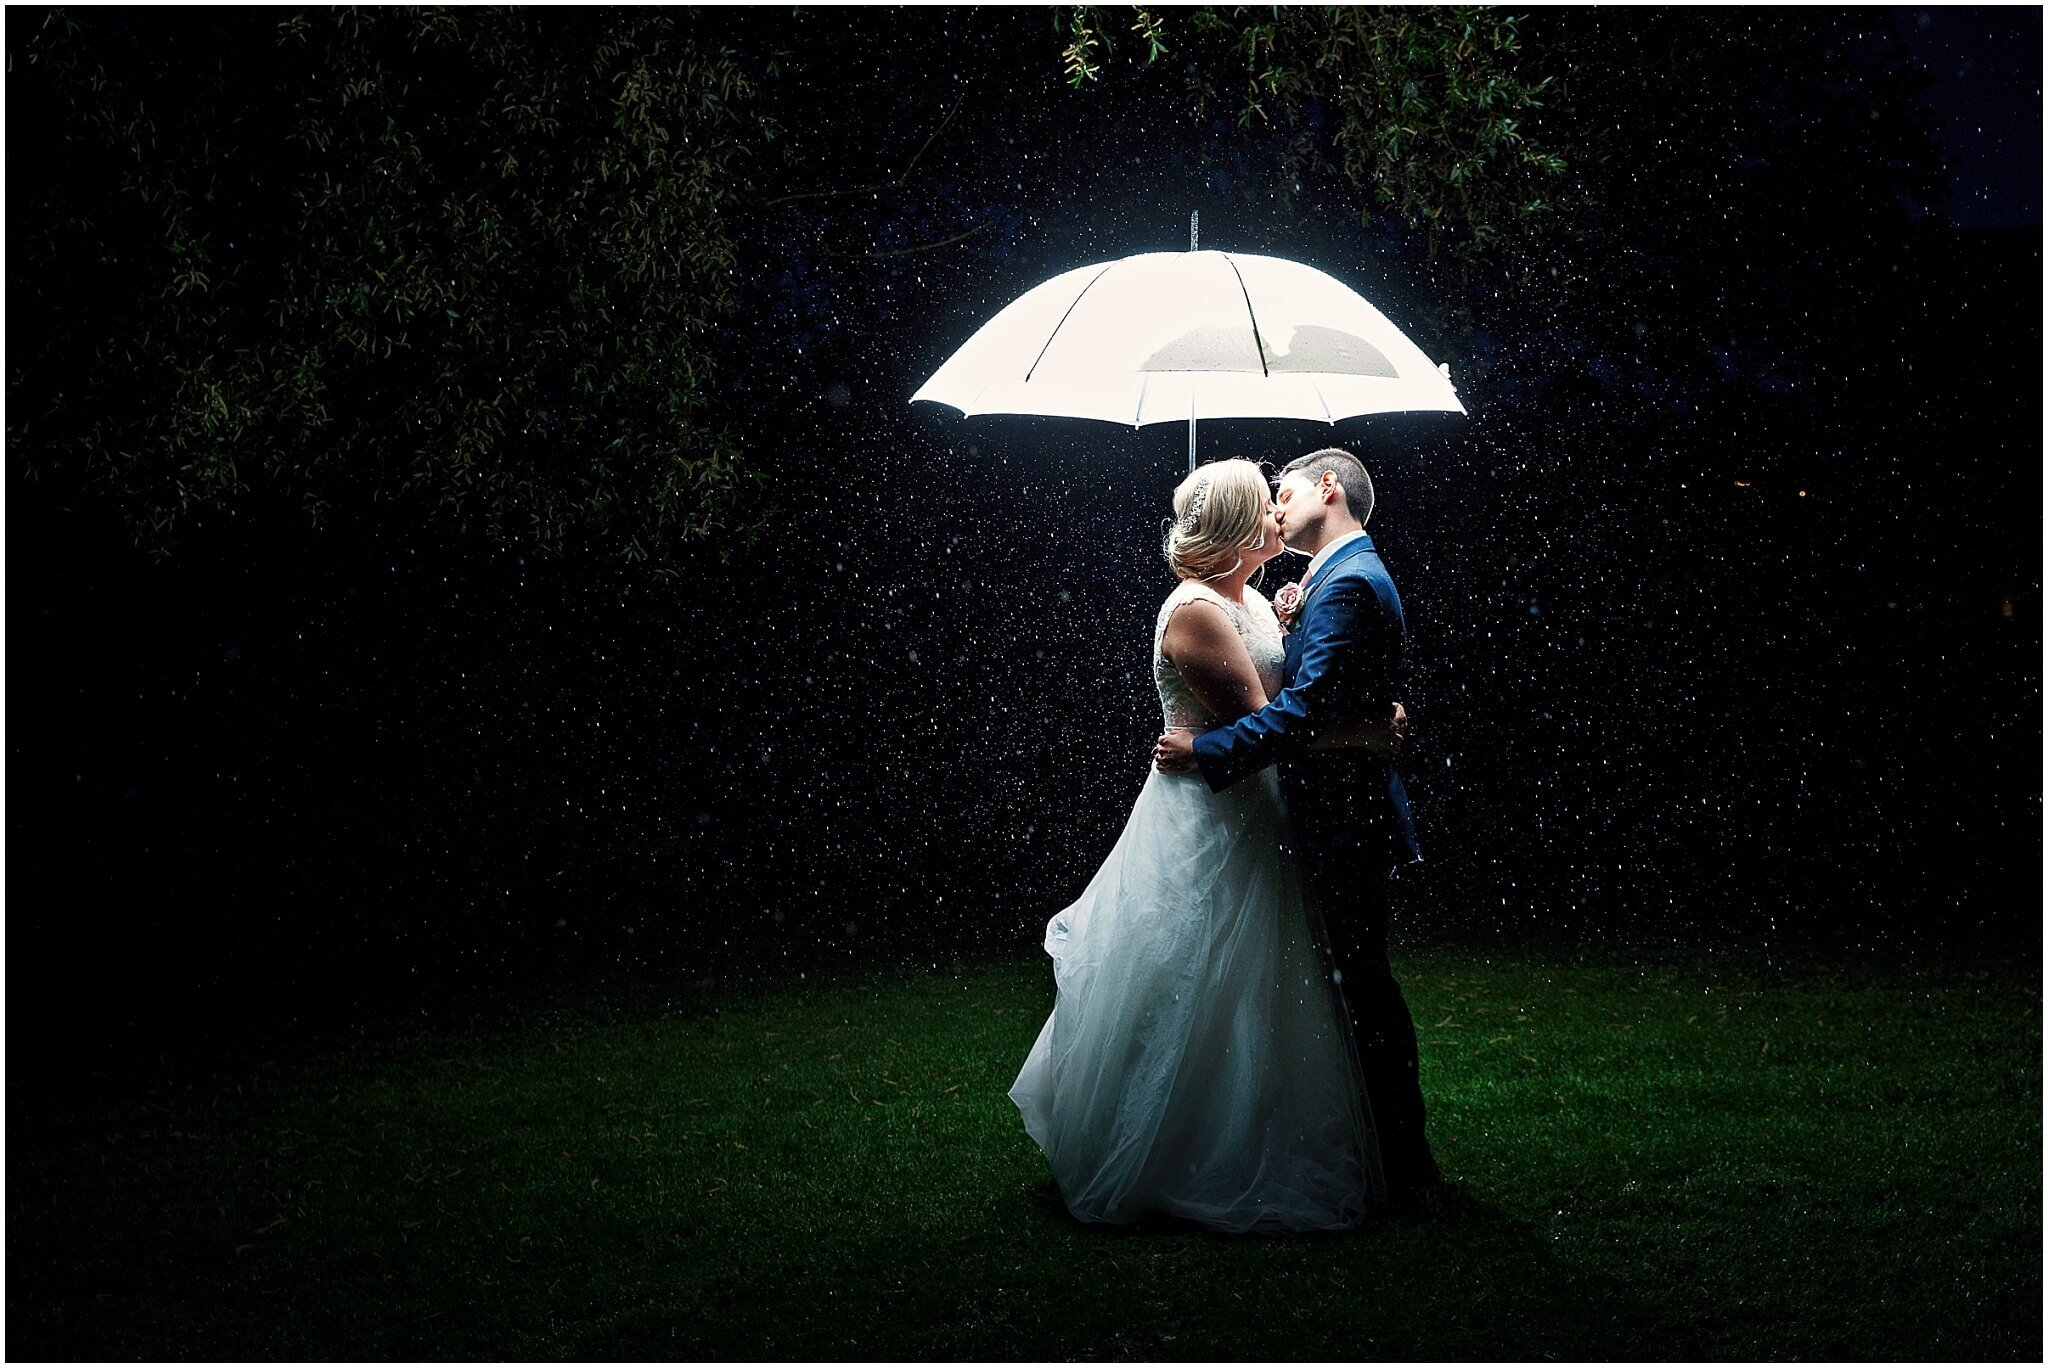 Wet wedding solution